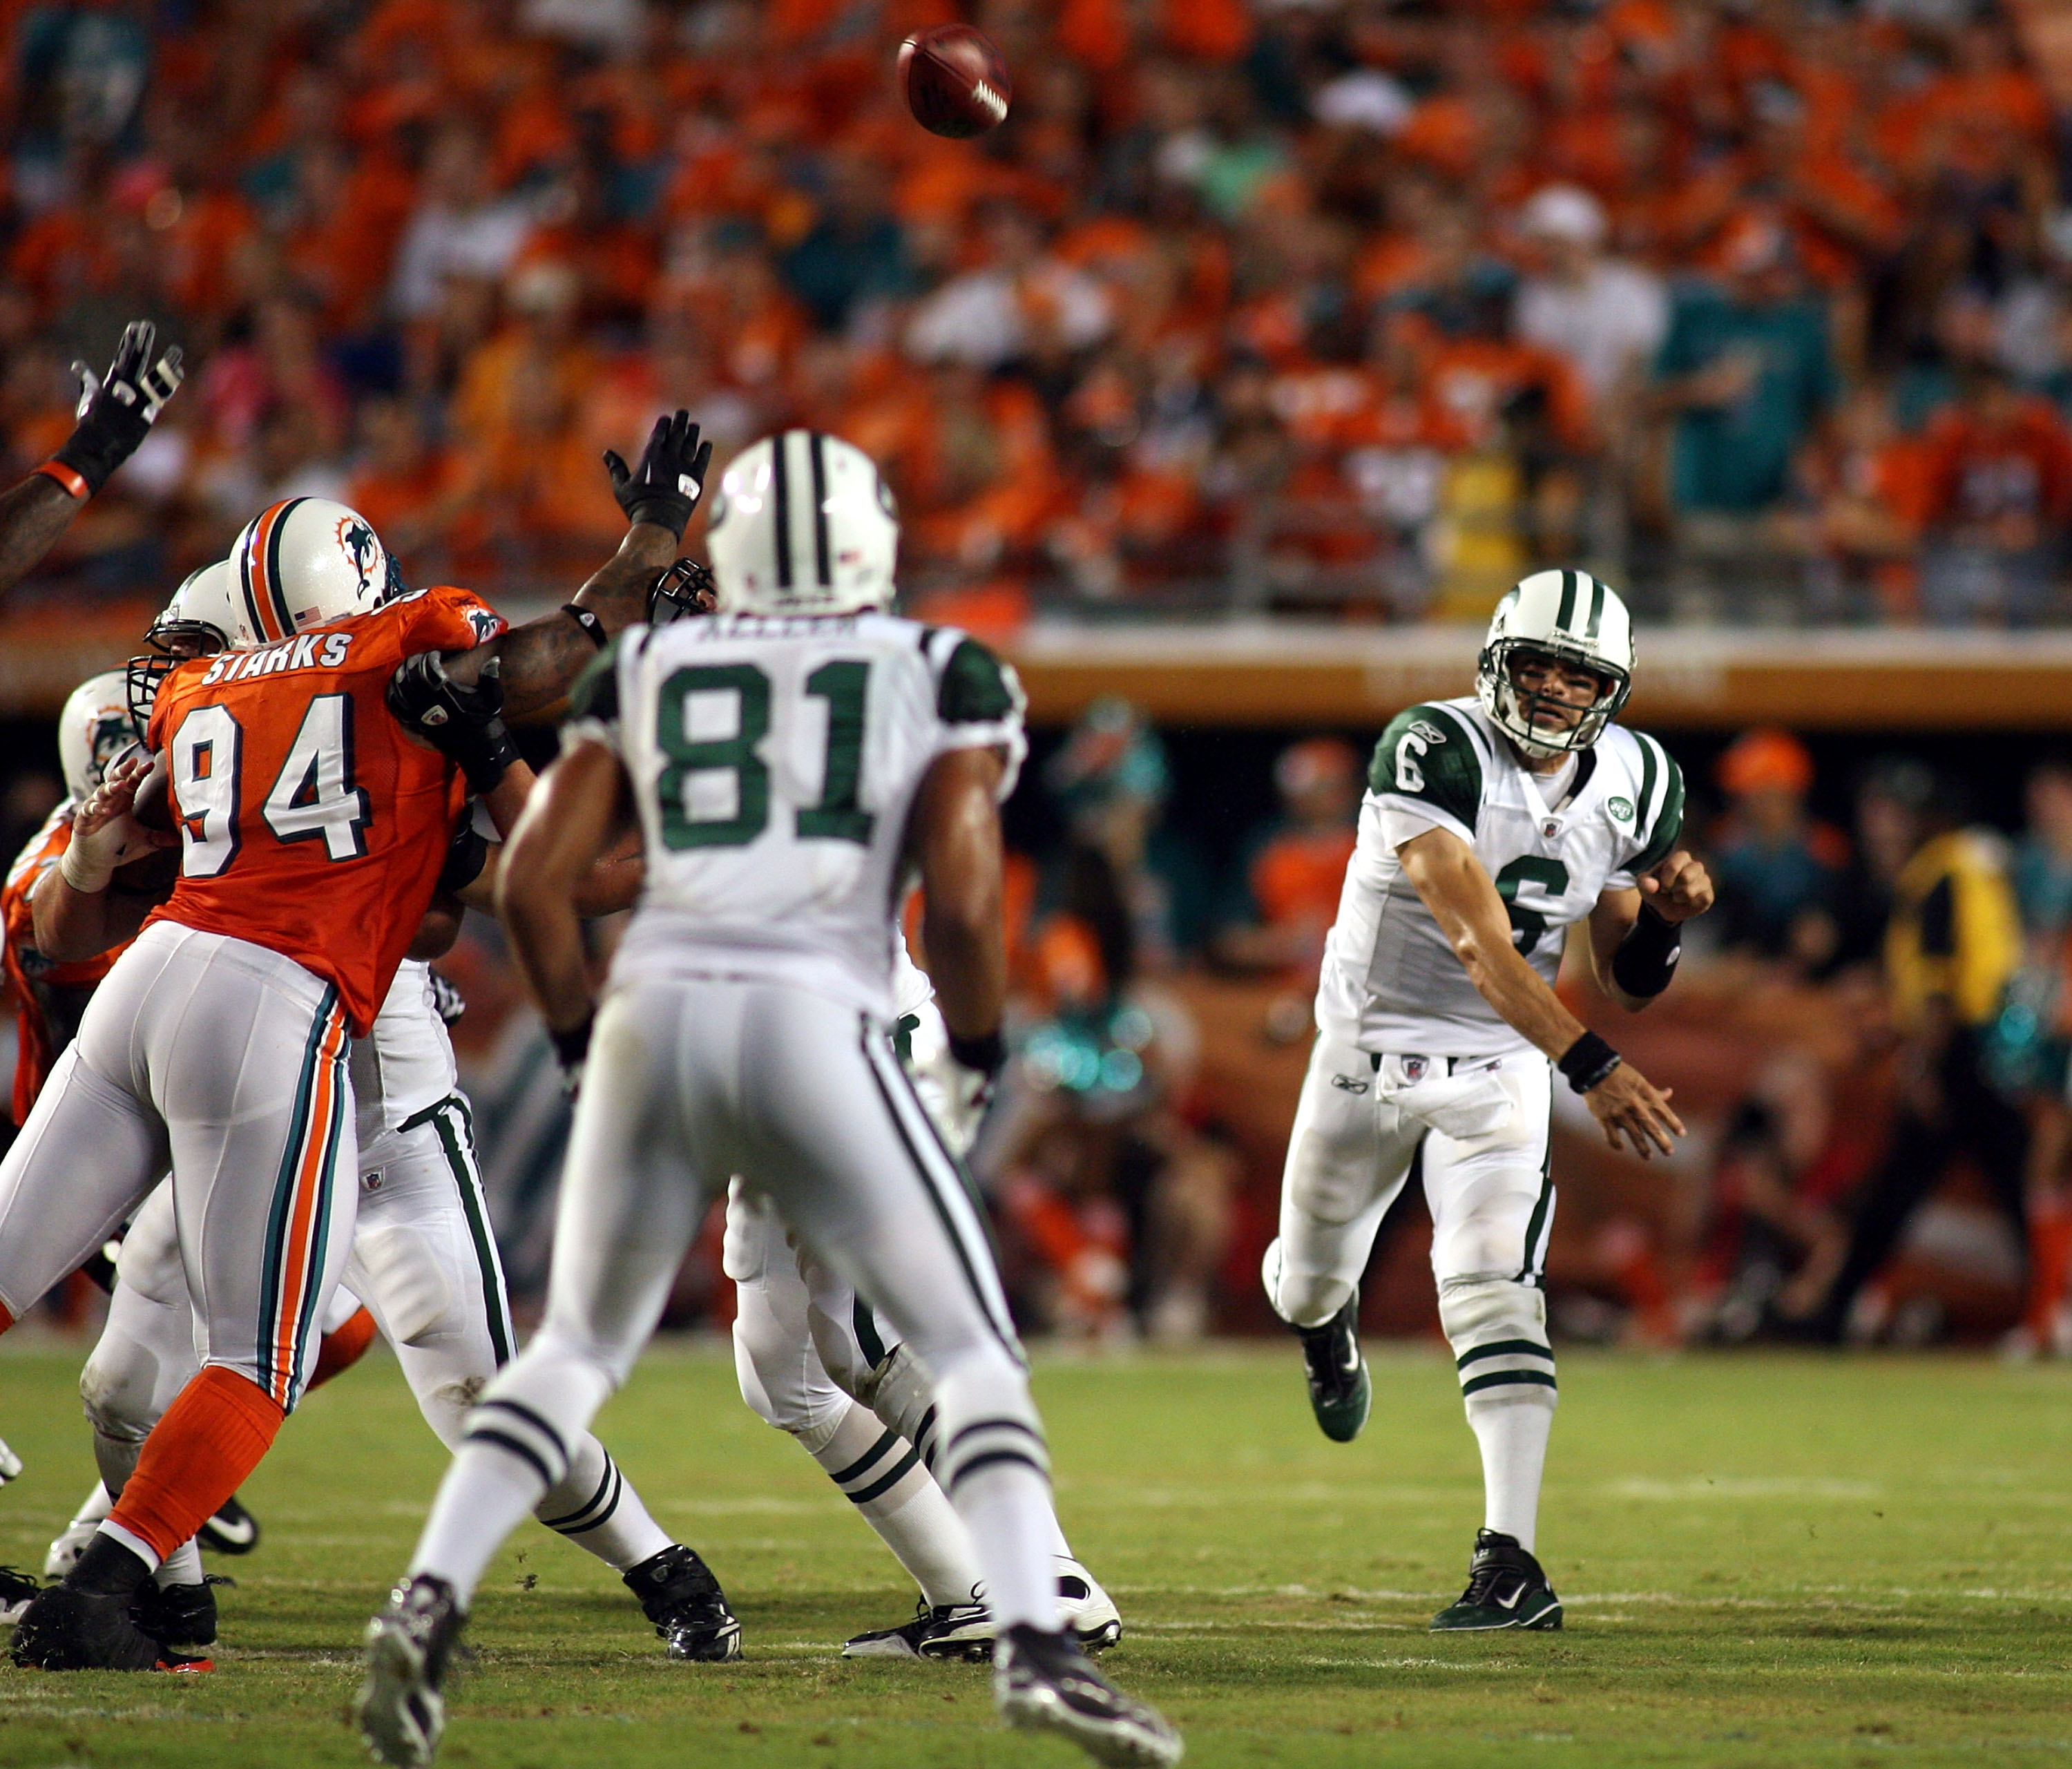 MIAMI - SEPTEMBER 26:  Quarterback Mark Sanchez #6 of the New York Jets throws against the Miami Dolphins at Sun Life Stadium on September 26, 2010 in Miami, Florida.  (Photo by Marc Serota/Getty Images)